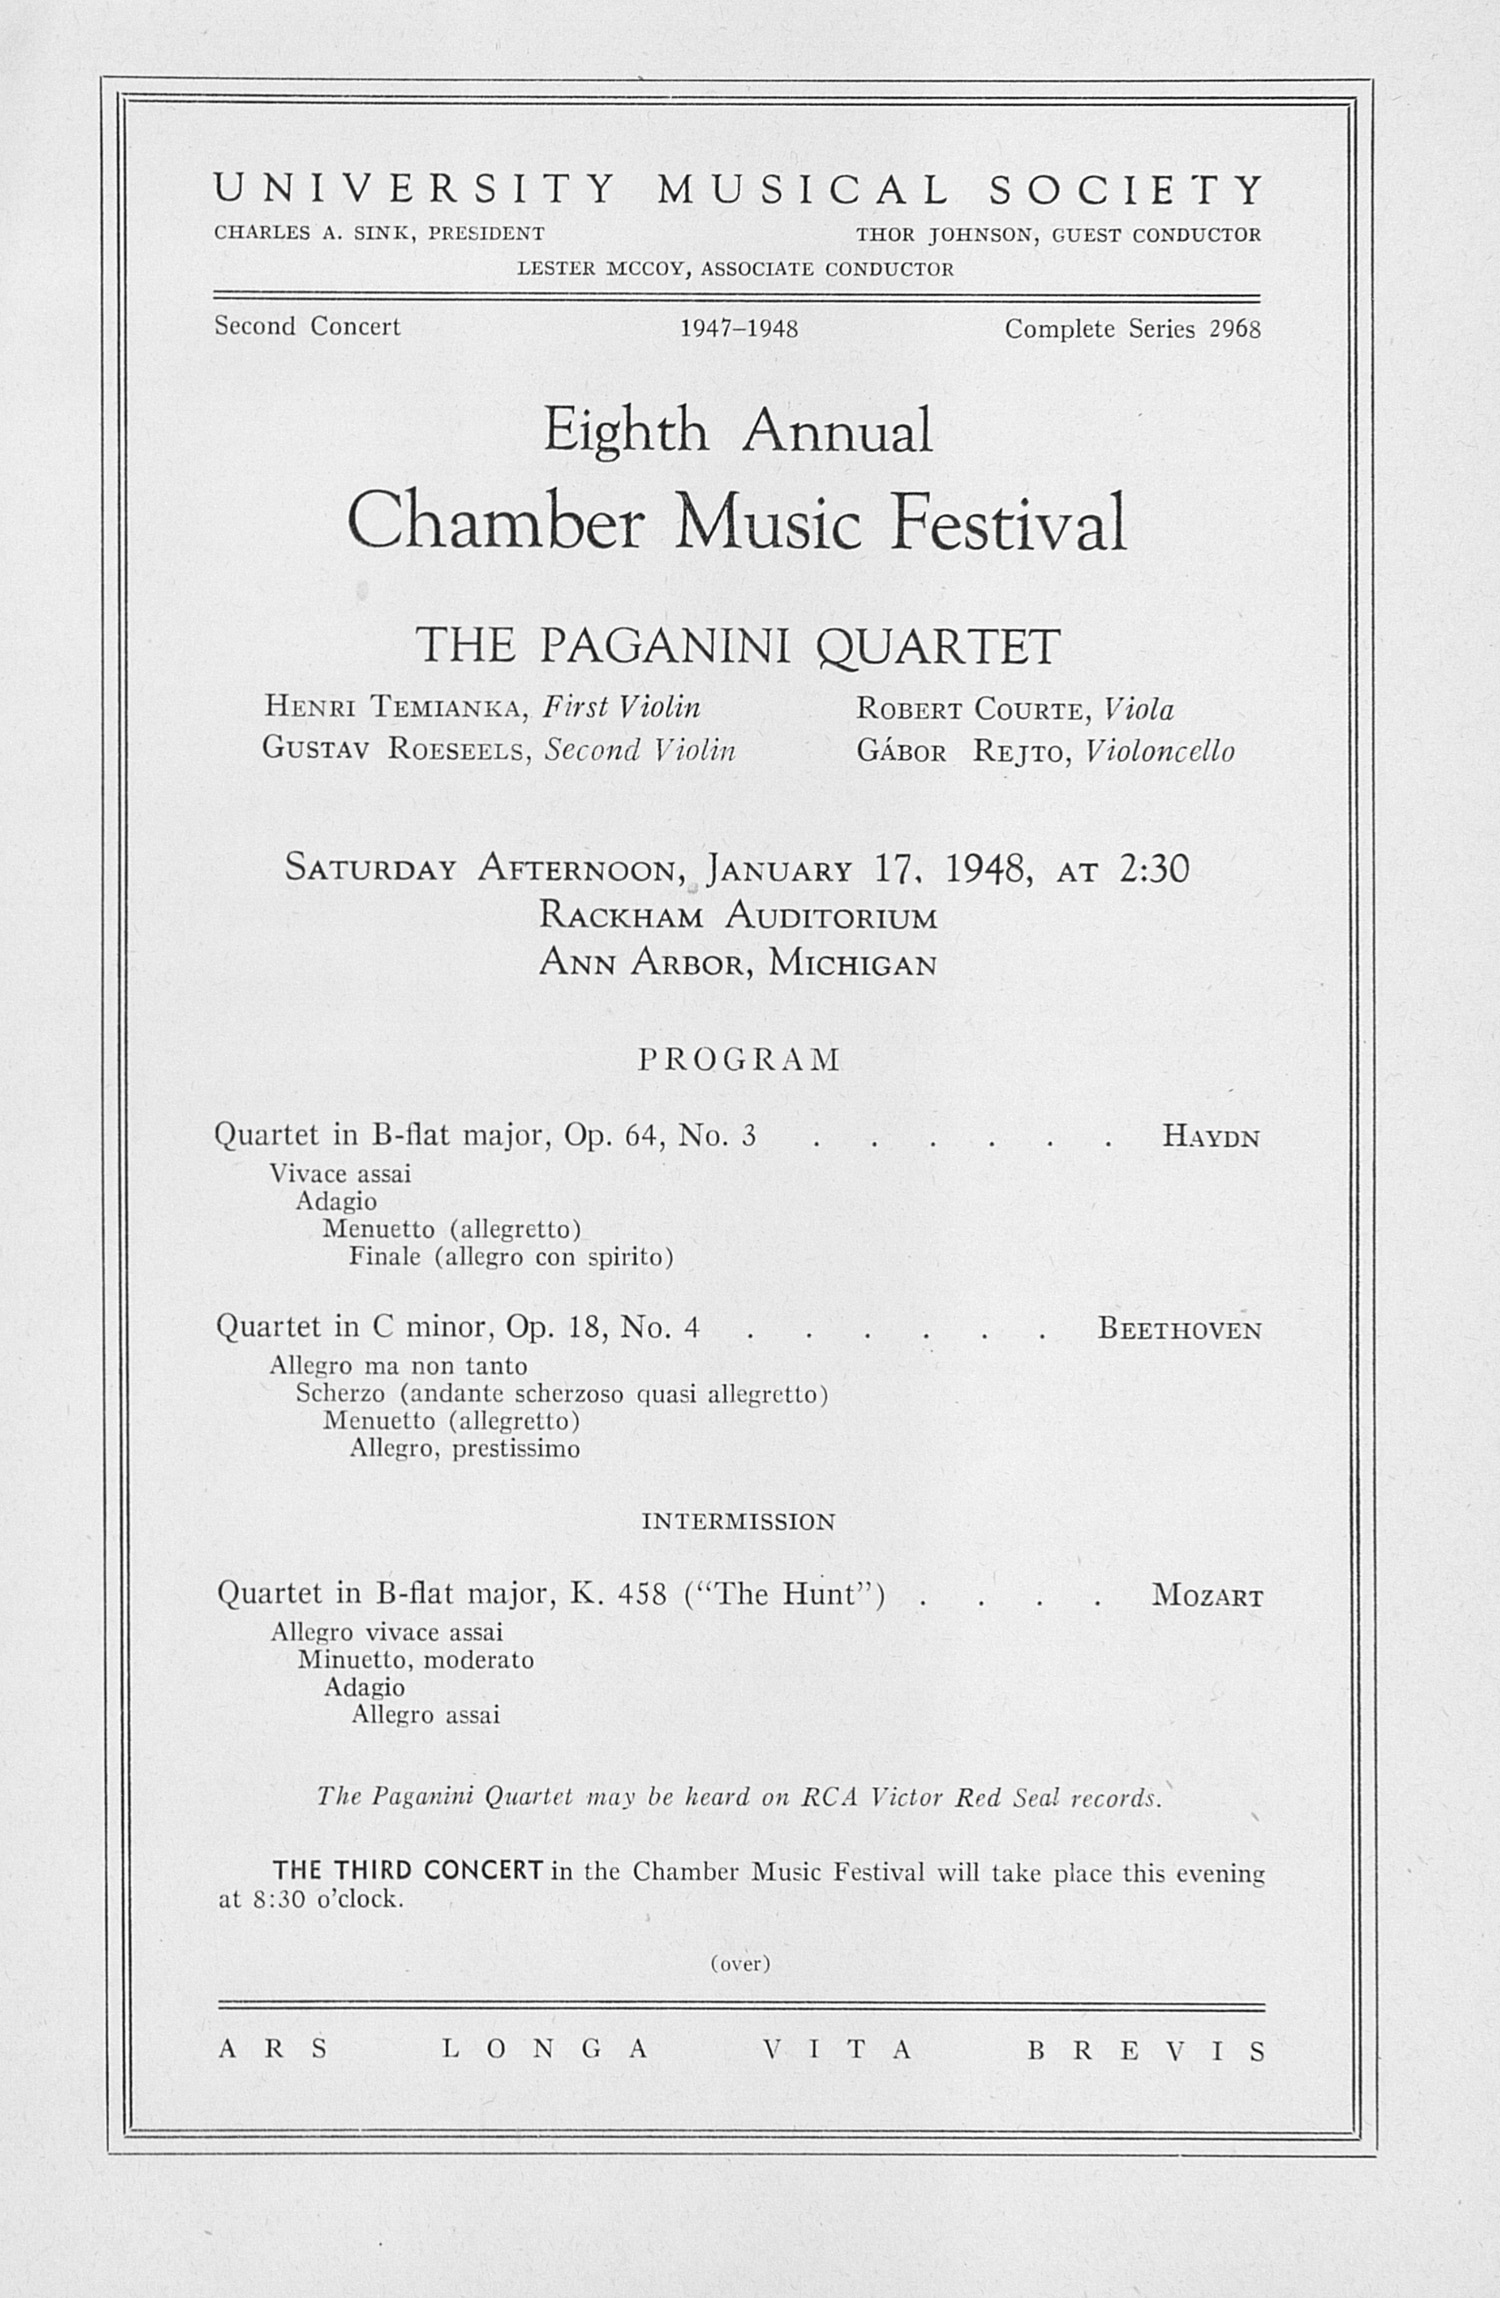 UMS Concert Program, January 17, 1948: Eighth Annual Chamber Music Festival -- The Paganini Quartet image